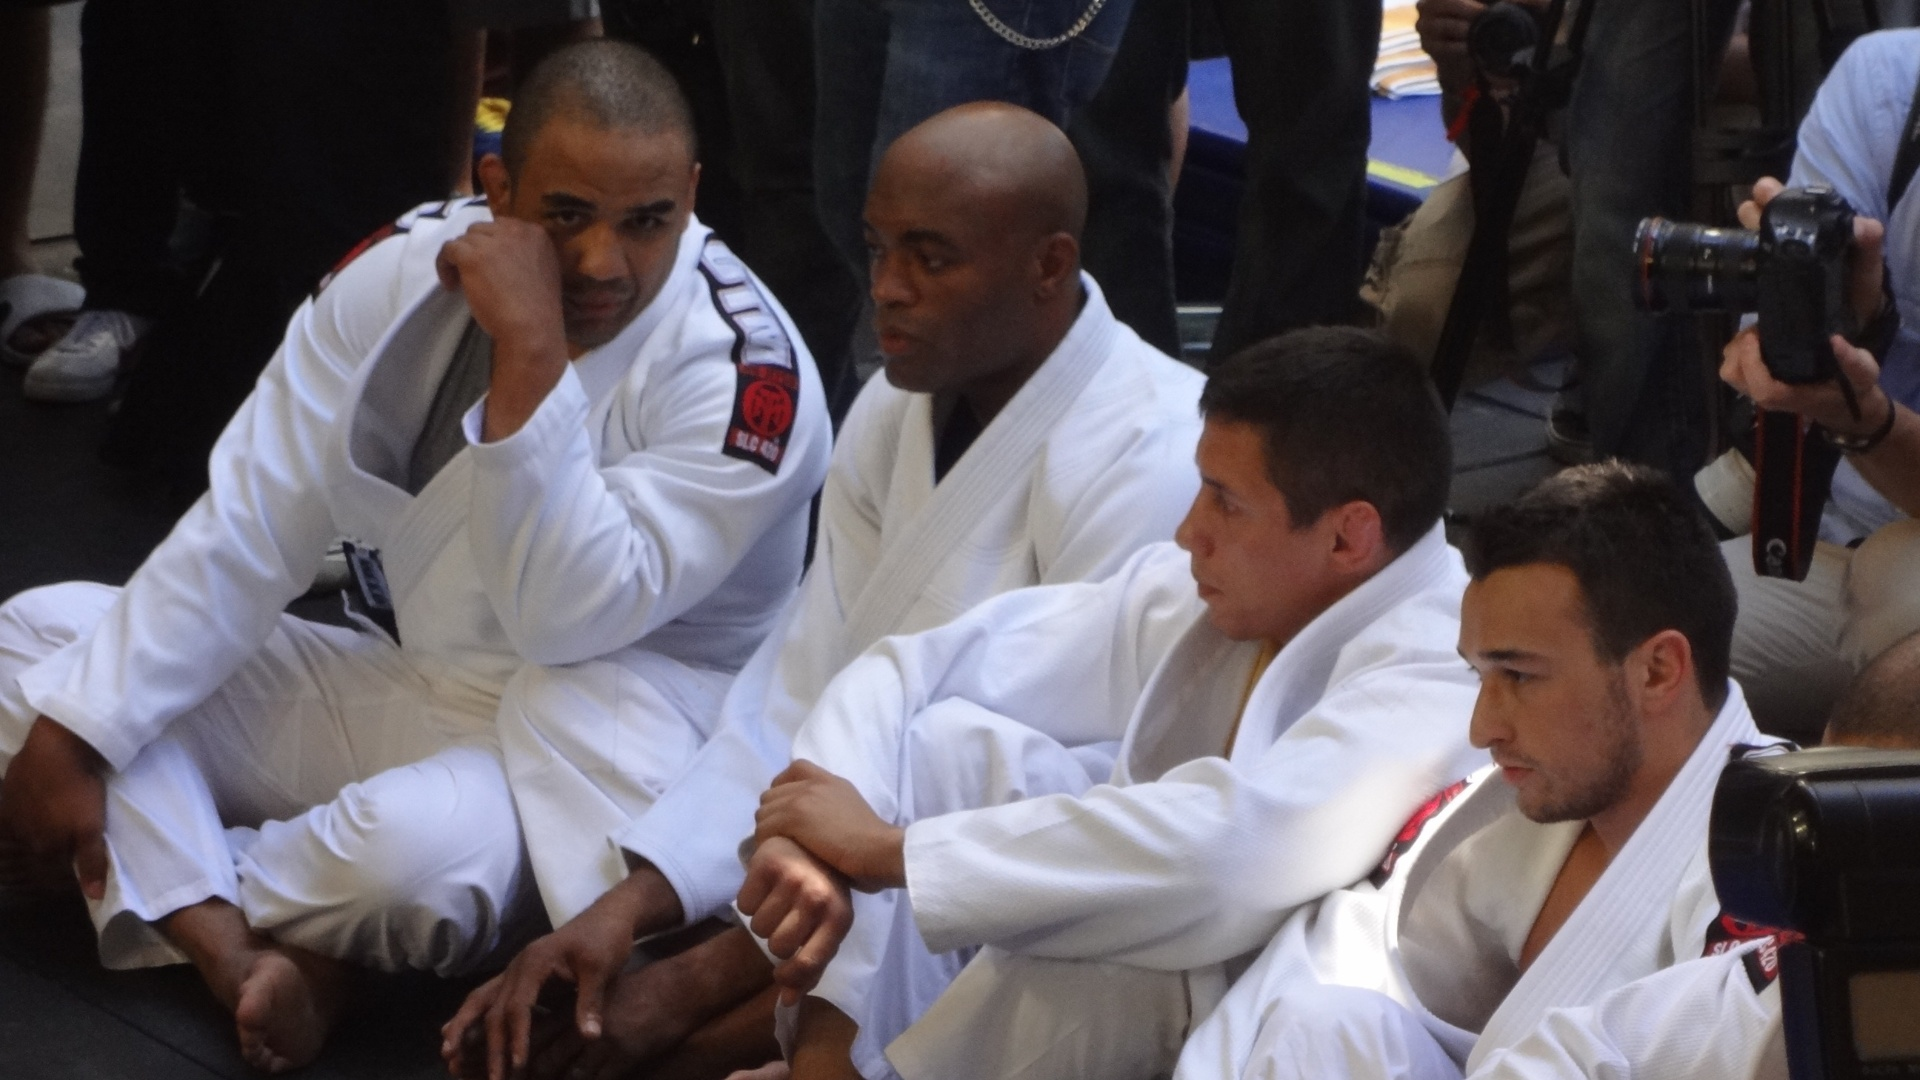 Anderson Silva, sentado, aguarda para iniciar seu treino durante evento aberto ao pblico, em Las Vegas